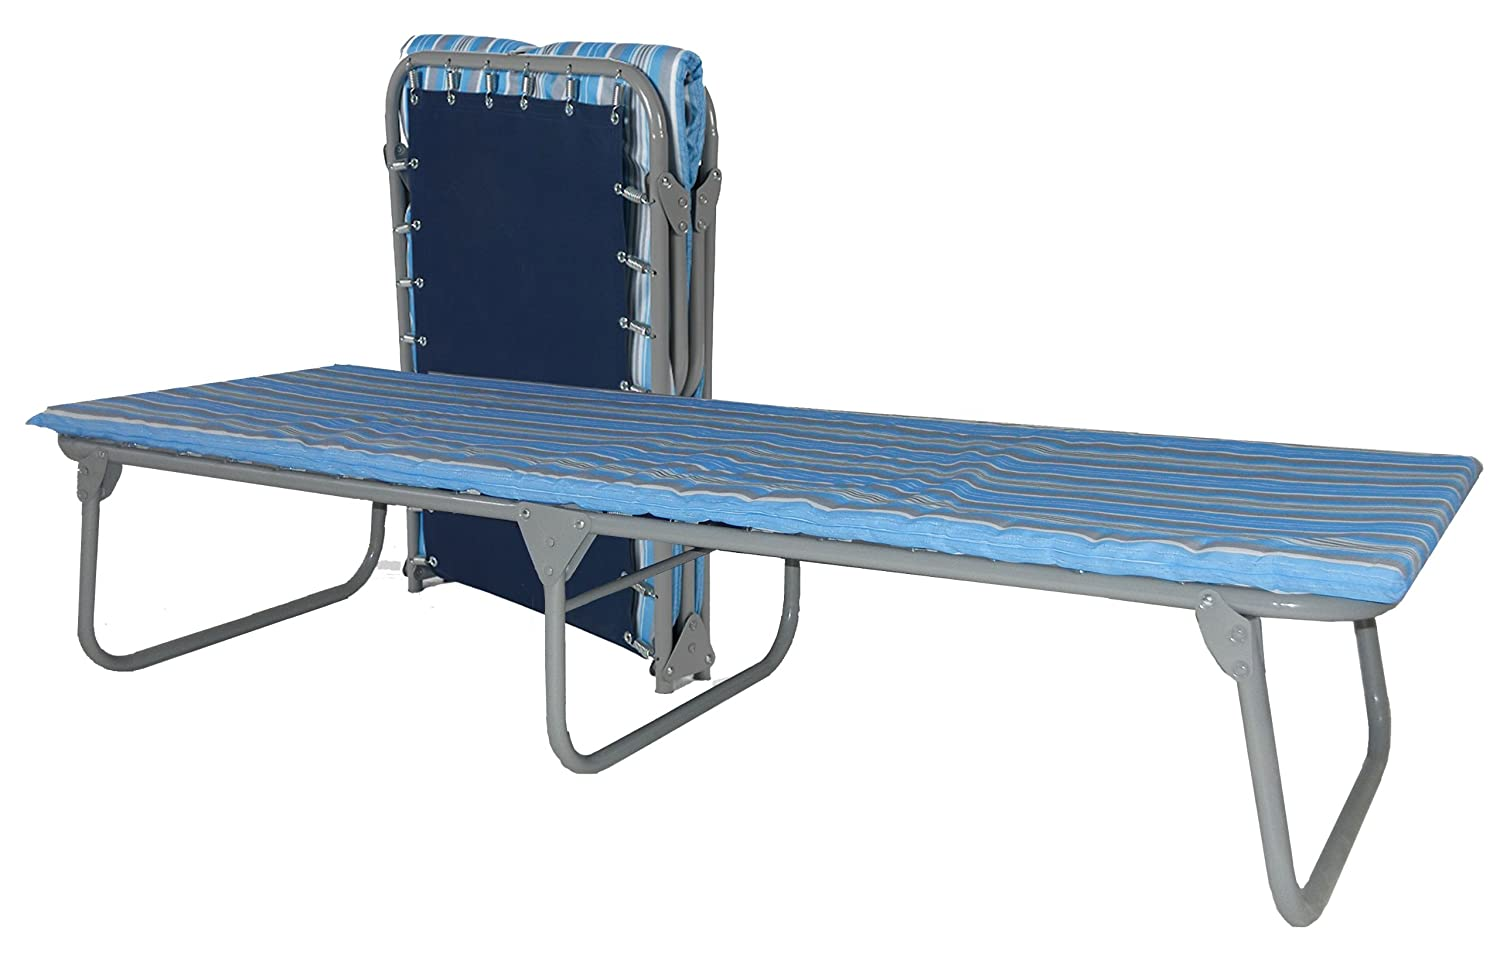 Amazon.com: Blantex XB-4 Heavy Duty Steel Folding Cot with Foam Mat ...